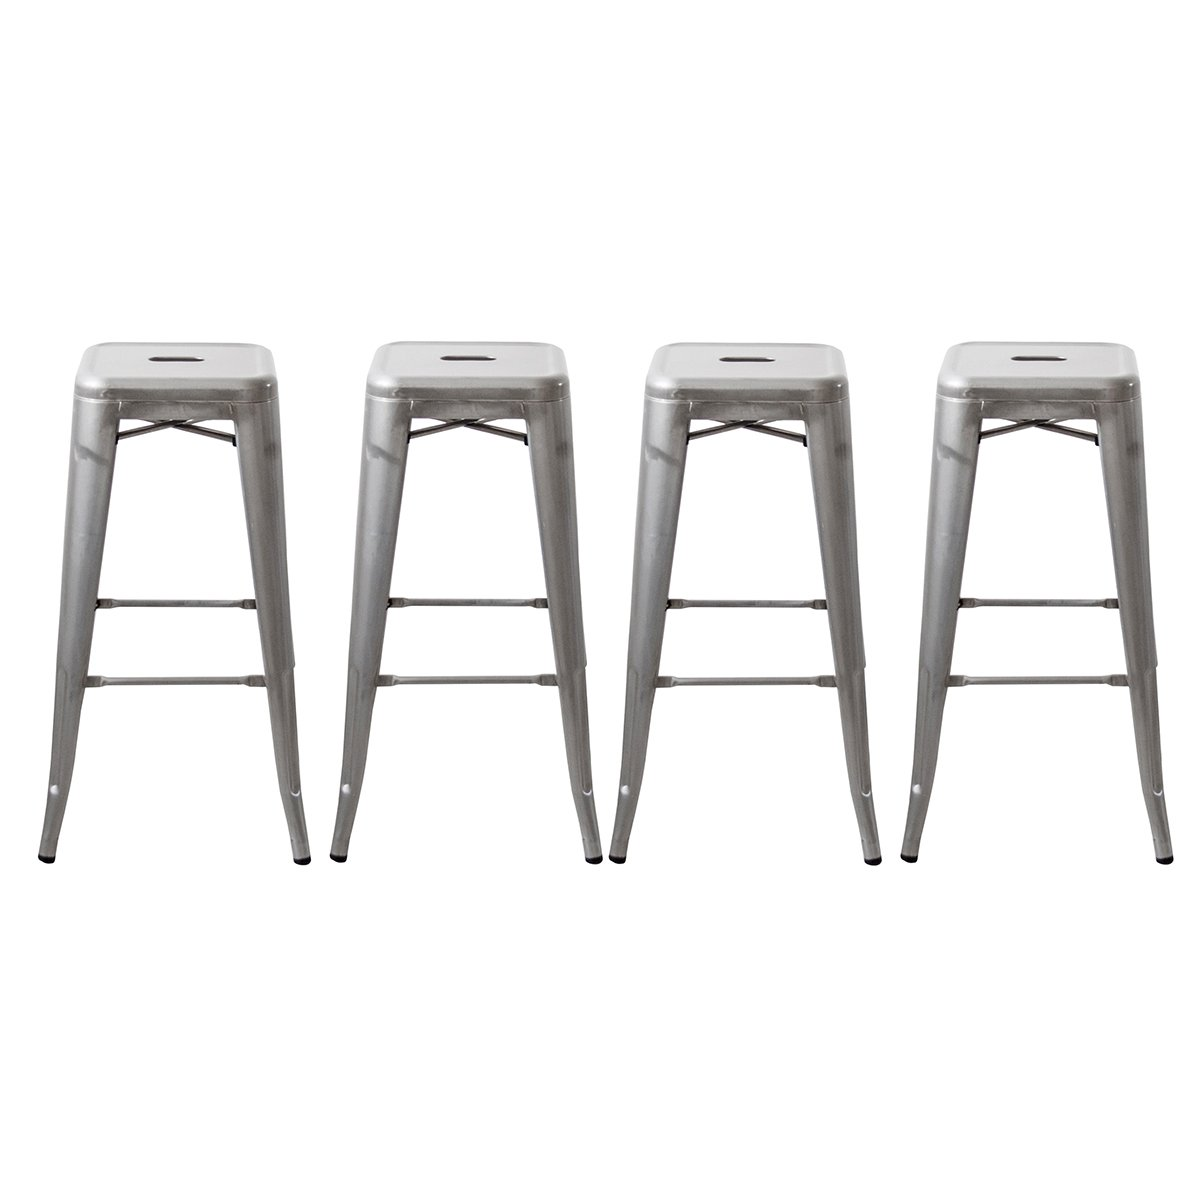 Buschman Set of Four Galvanized 30 Inches Counter Height Tolix-Style Metal Bar Stools, Indoor/Outdoor, Stackable